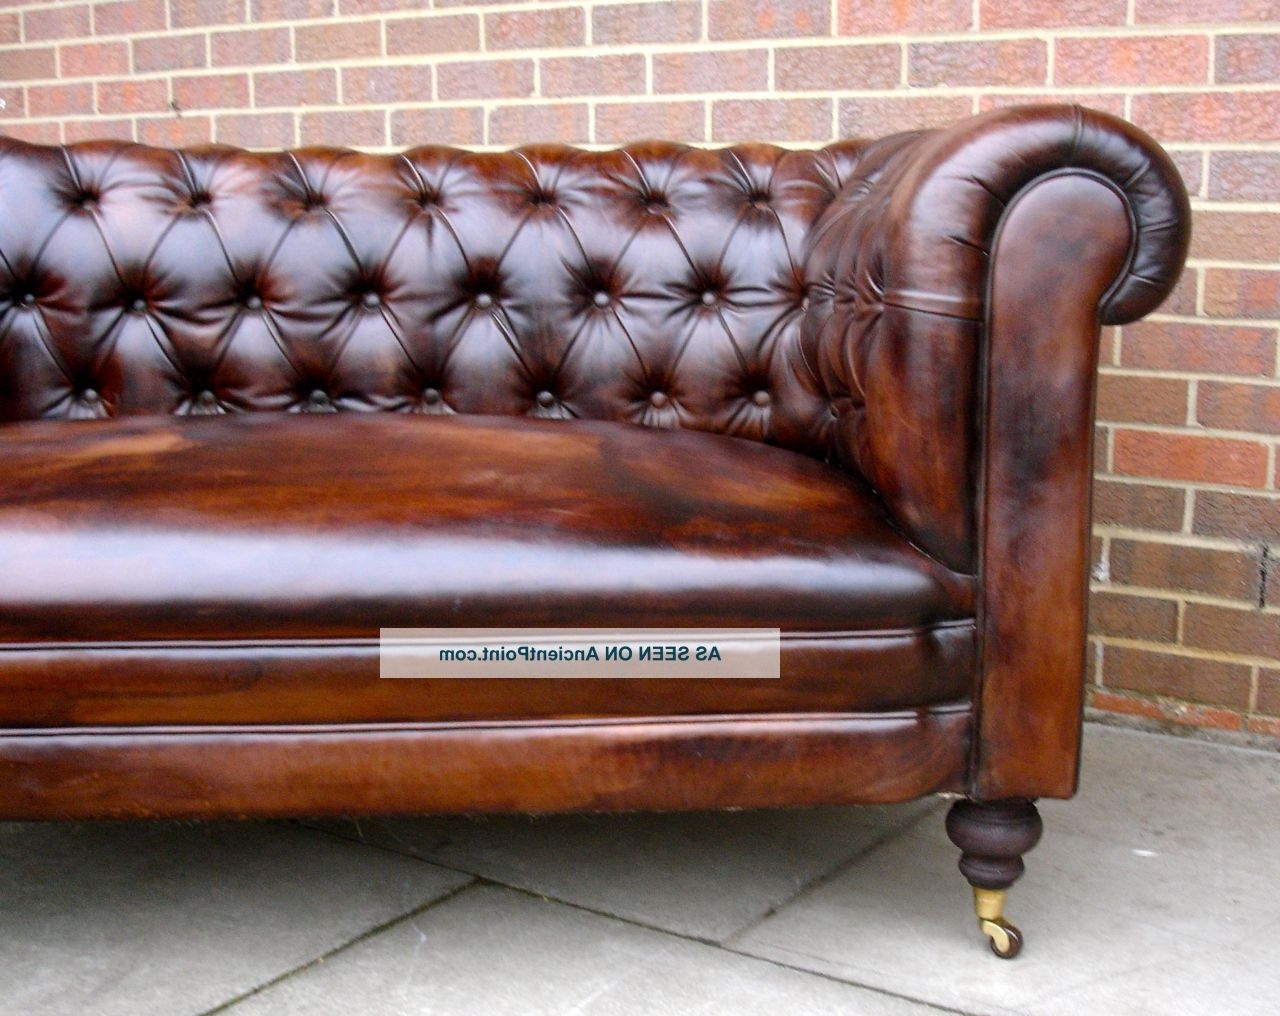 2018 Used Leather Chesterfield Sofa – Home And Textiles Intended For Leather Chesterfield Sofas (View 13 of 15)